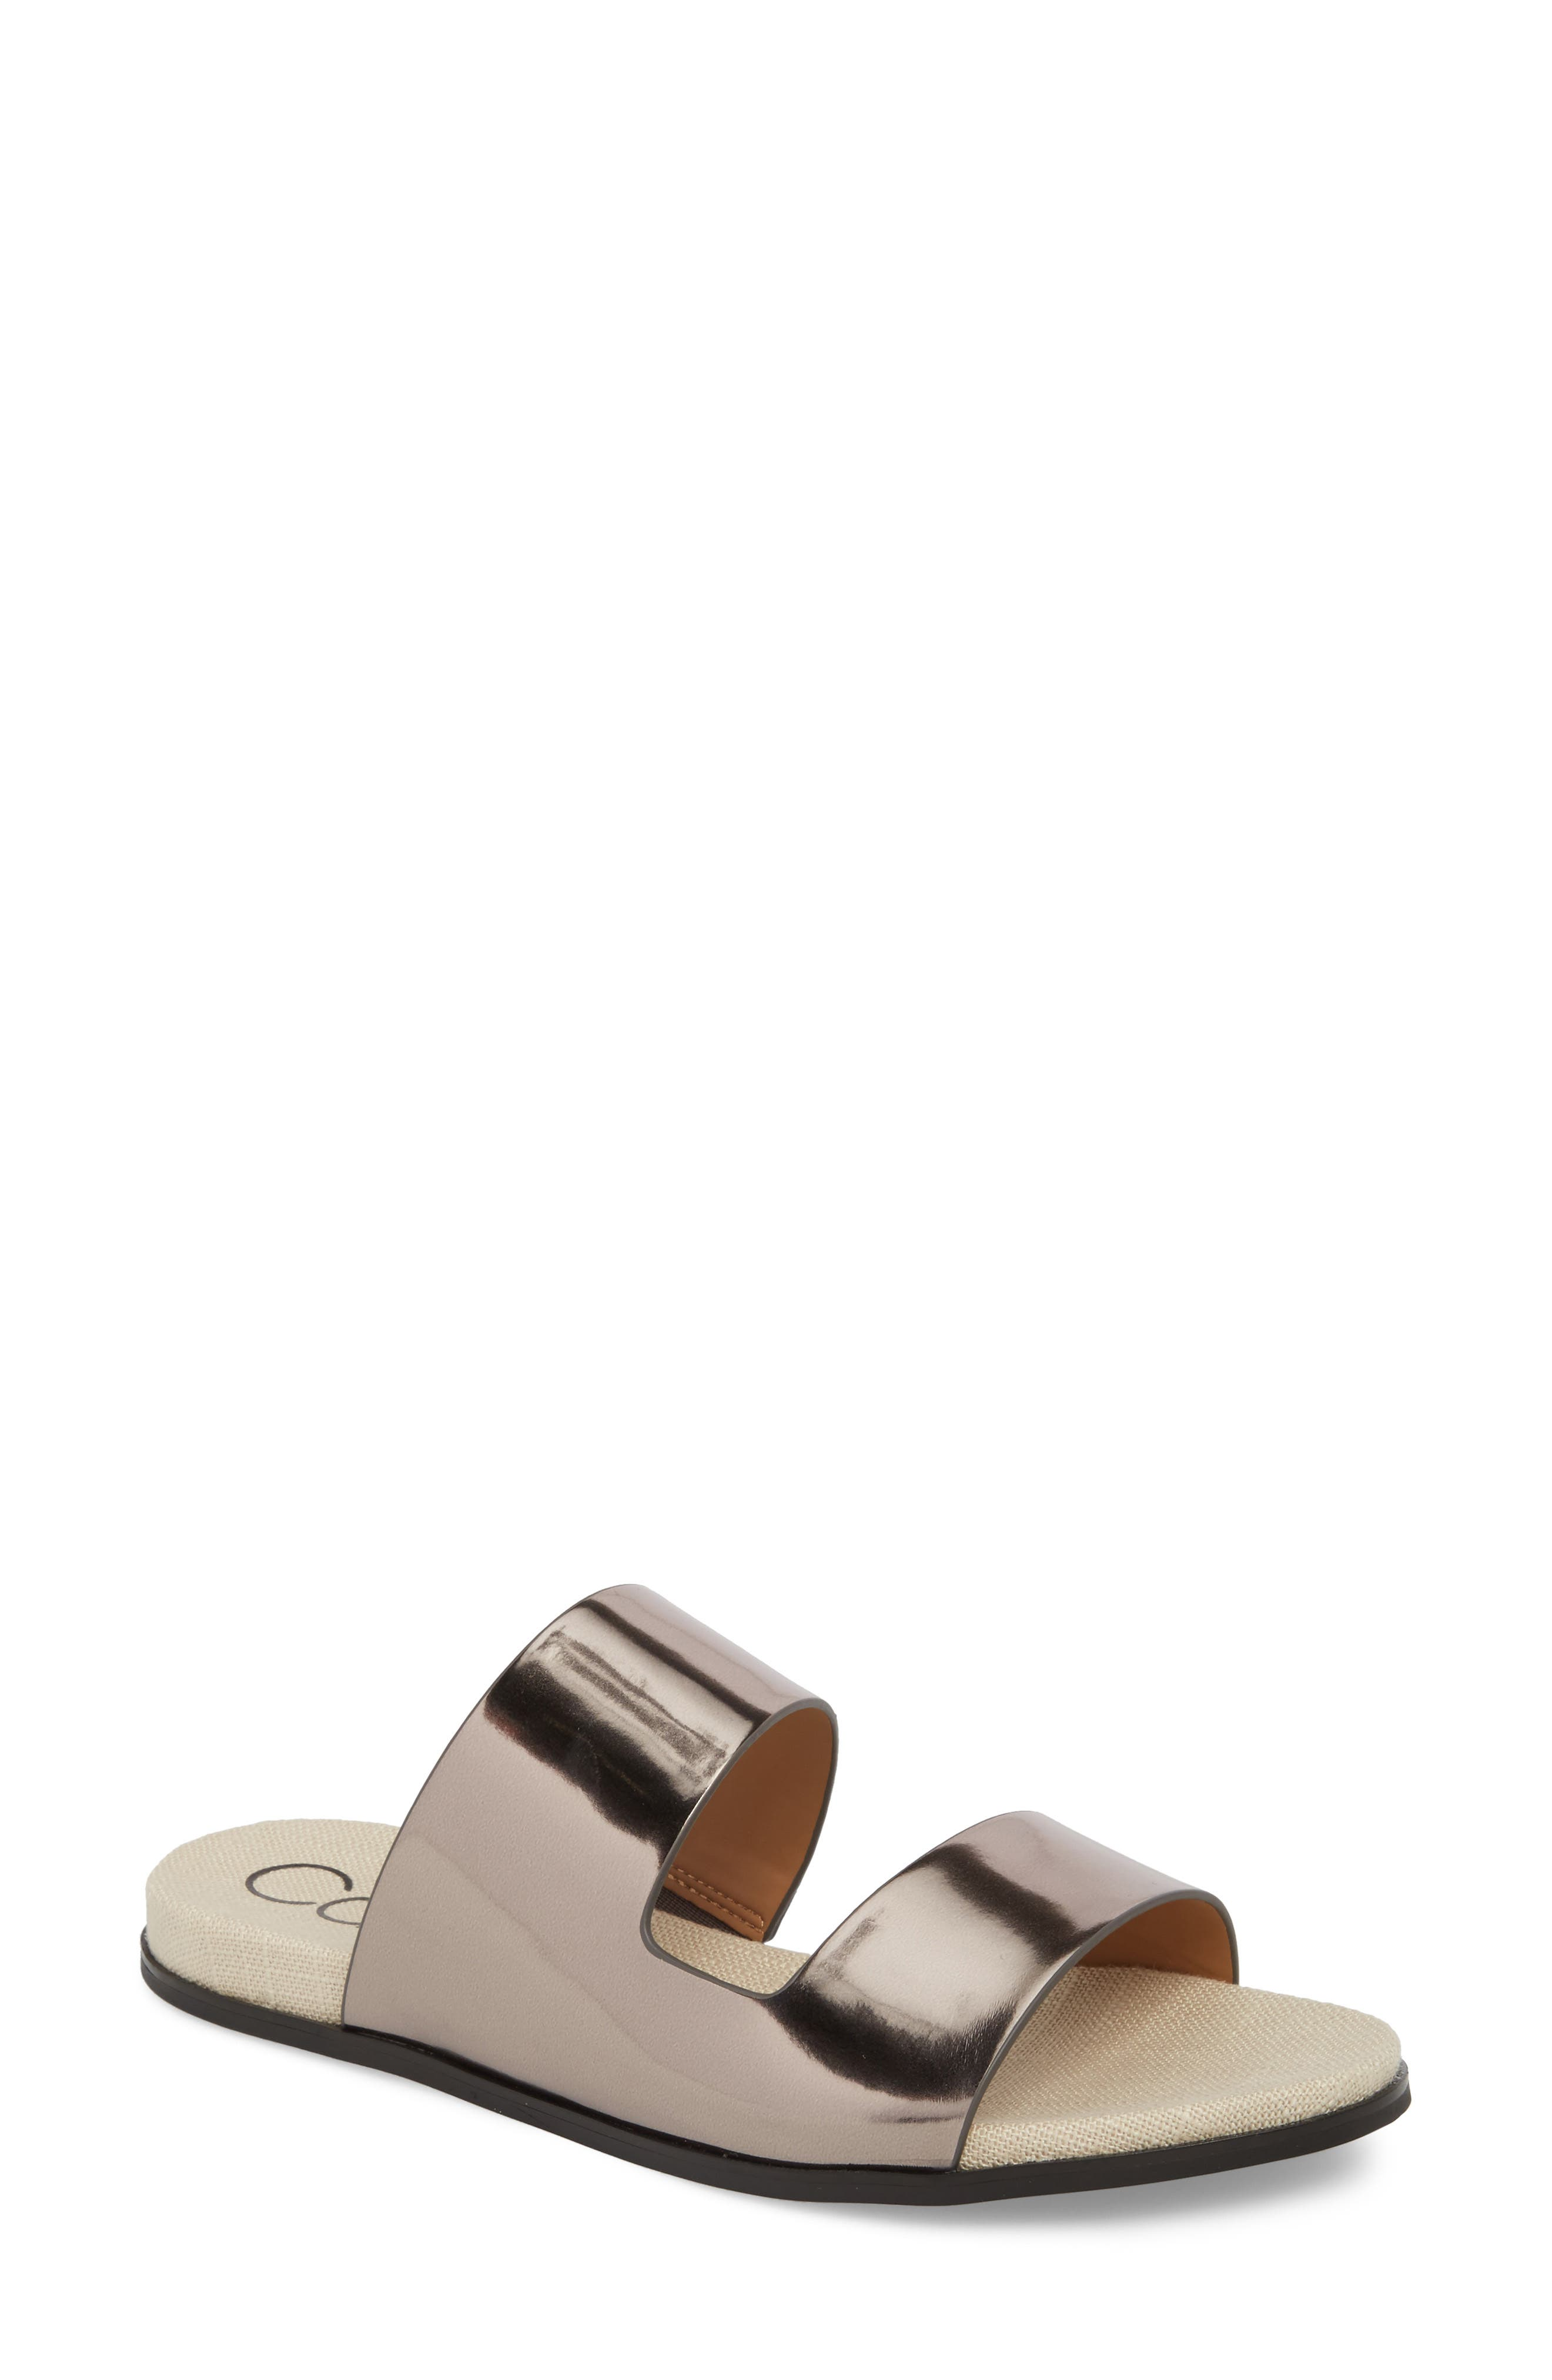 Posey Slide Sandal,                         Main,                         color, Pewter Leather